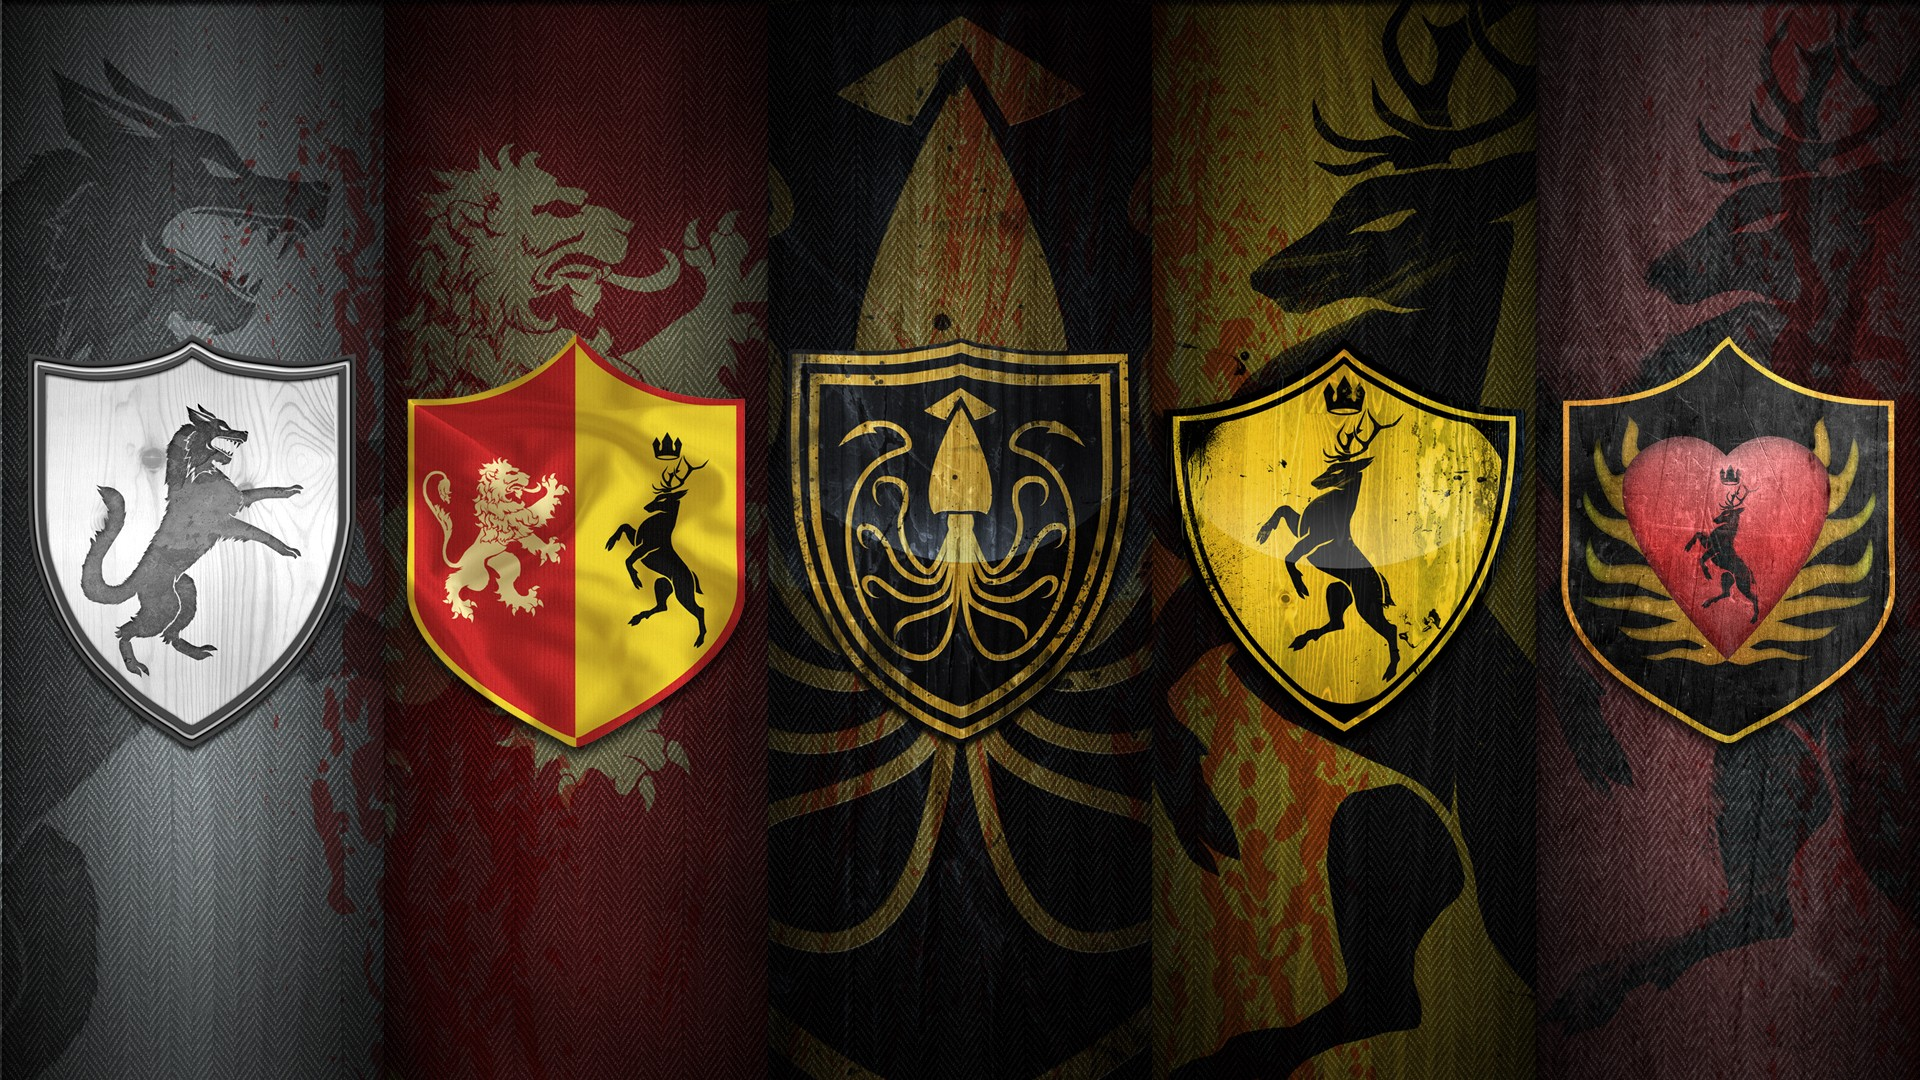 Game of Thrones Wallpaper Houses Game of Thrones House Sigils